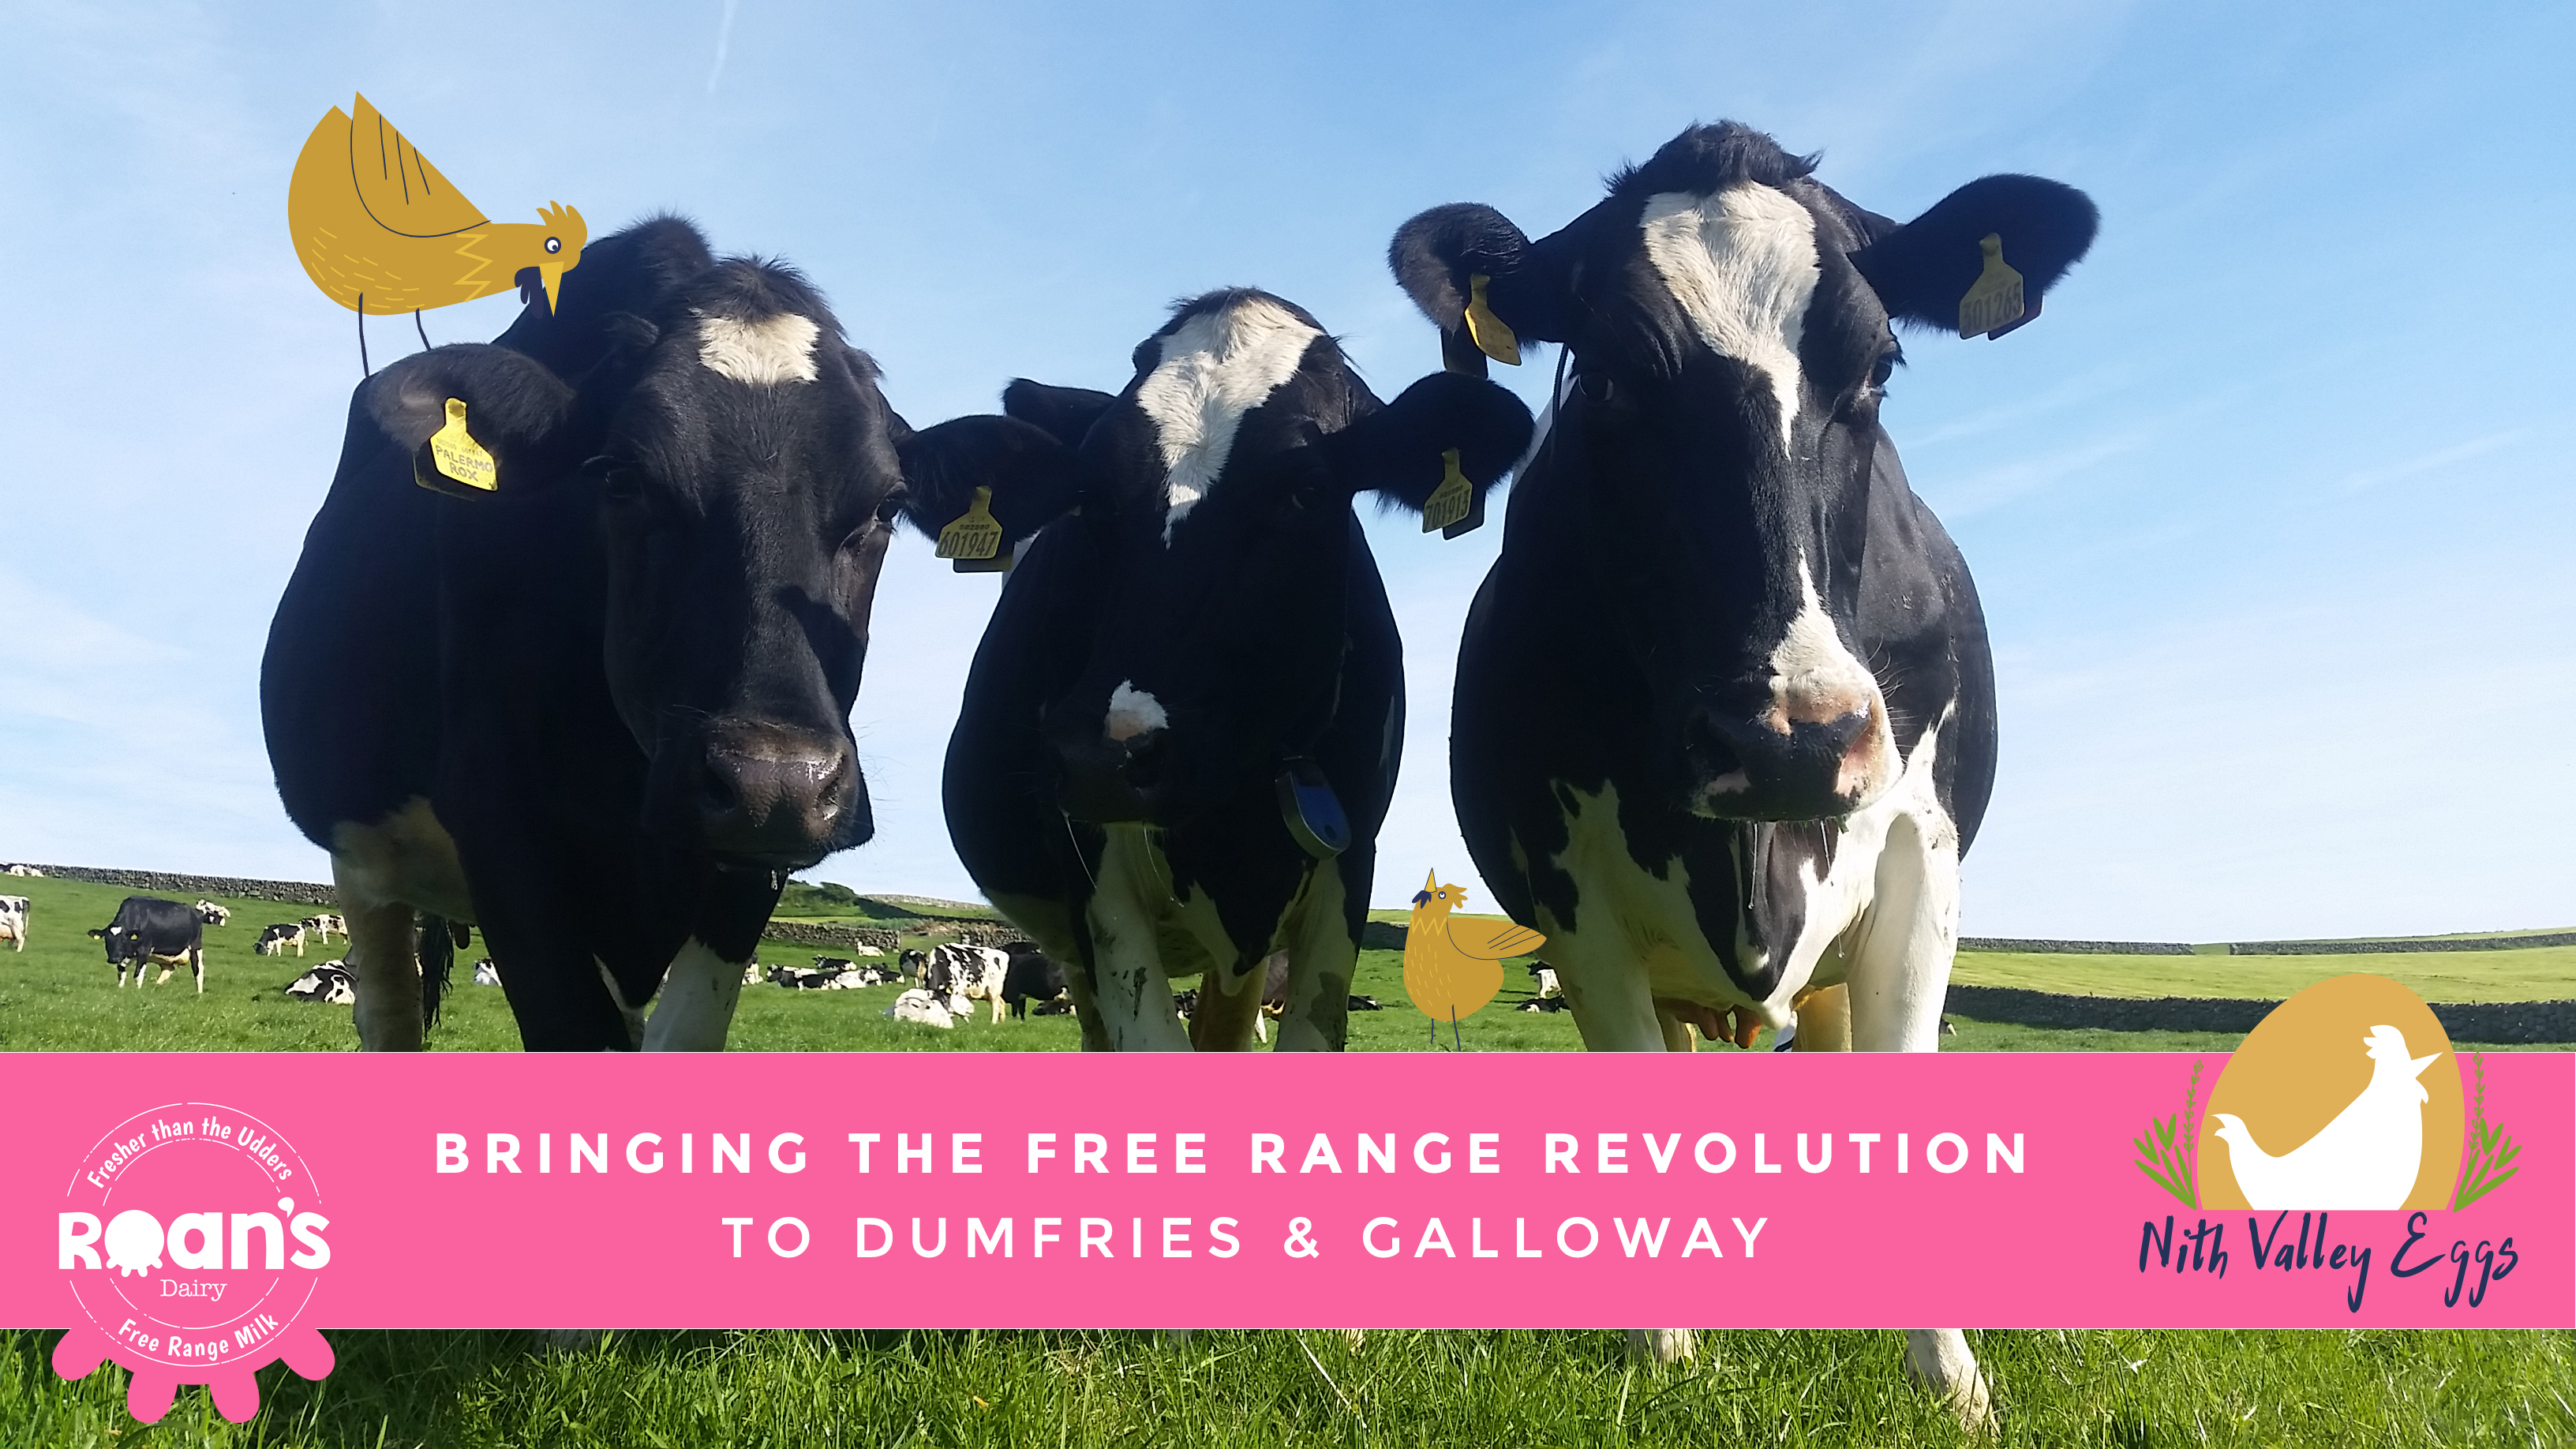 The Free Range Farming Revolution is taking Dumfries & Galloway by storm!